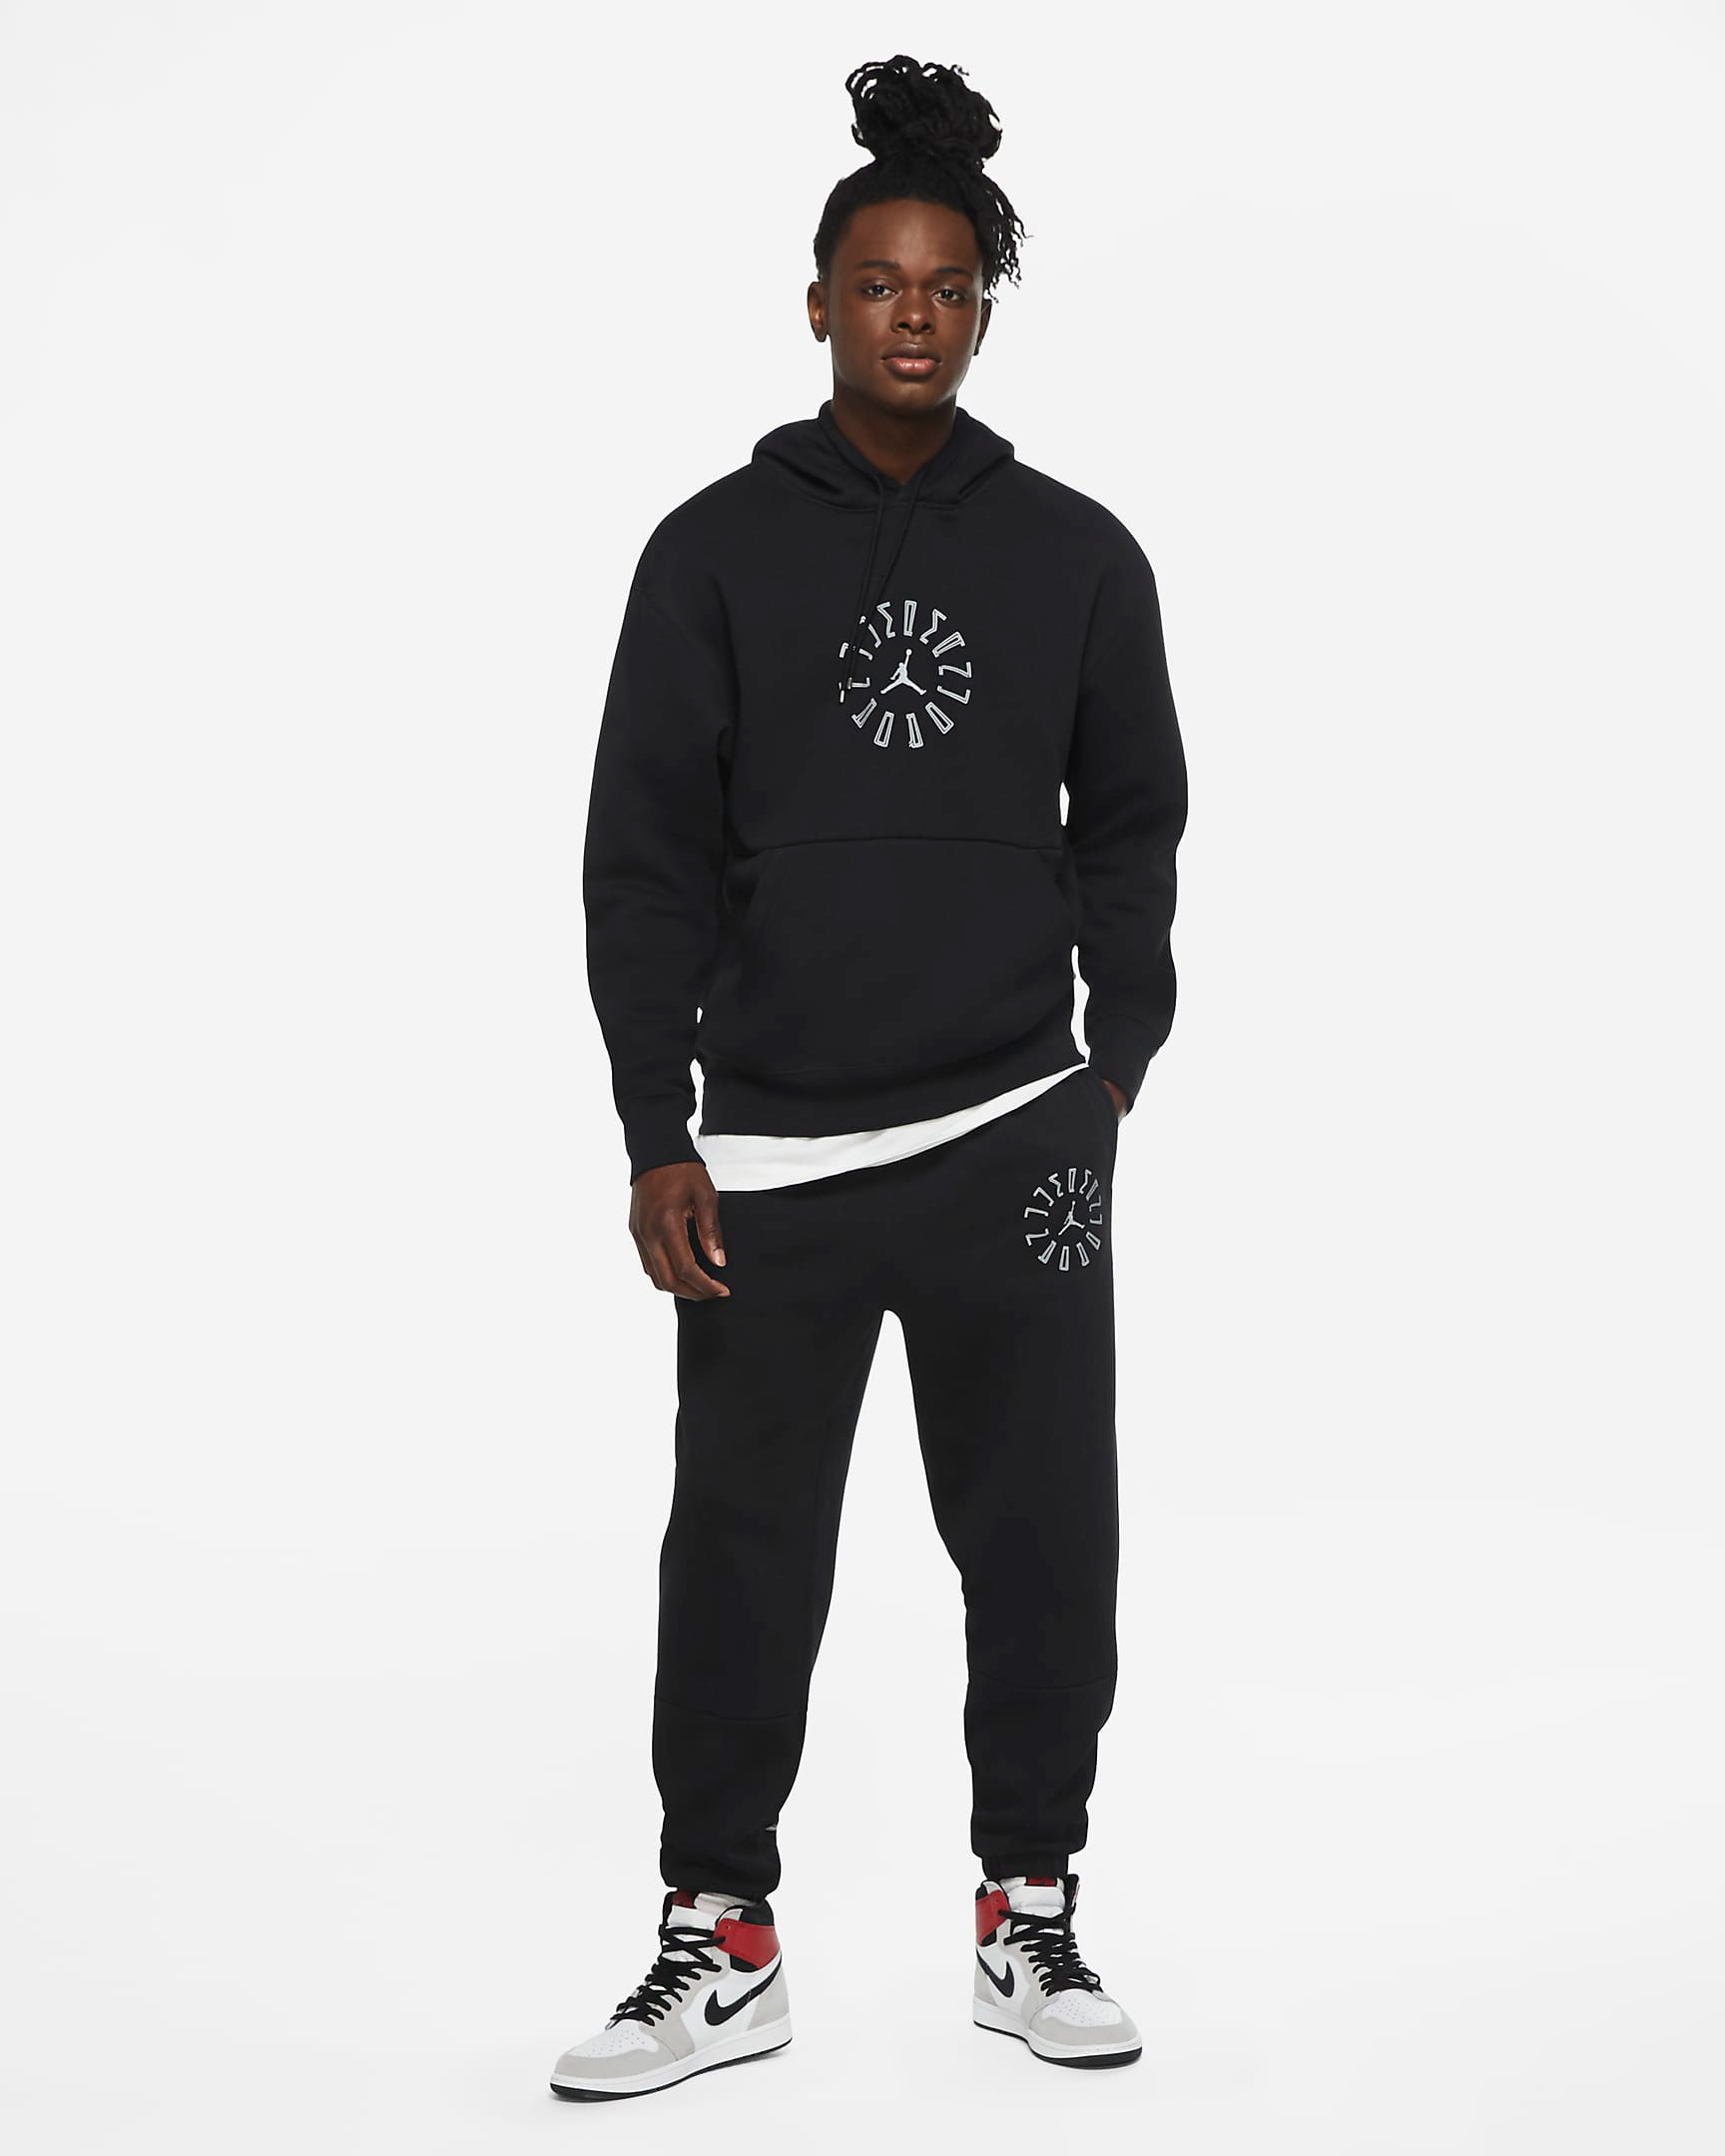 air-jordan-11-jubilee-25th-anniversary-hoodie-pants-outfit